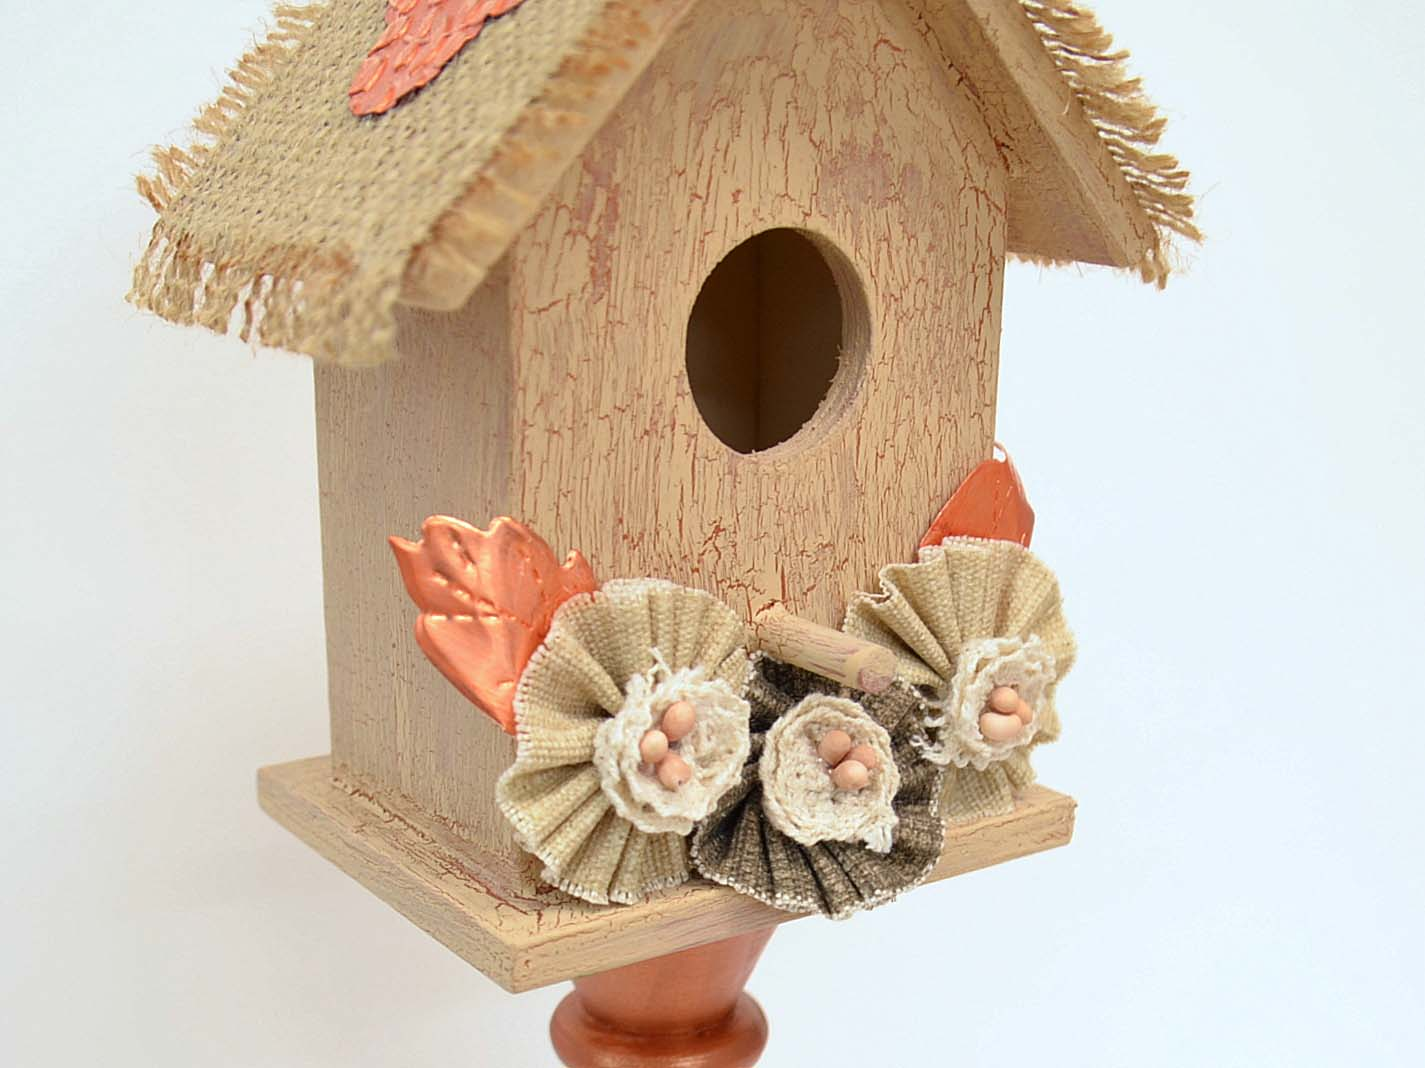 Exceptional Ben Franklin Crafts And Frame Shop, Monroe, WA: DIY Shabby Chic Birdhouse